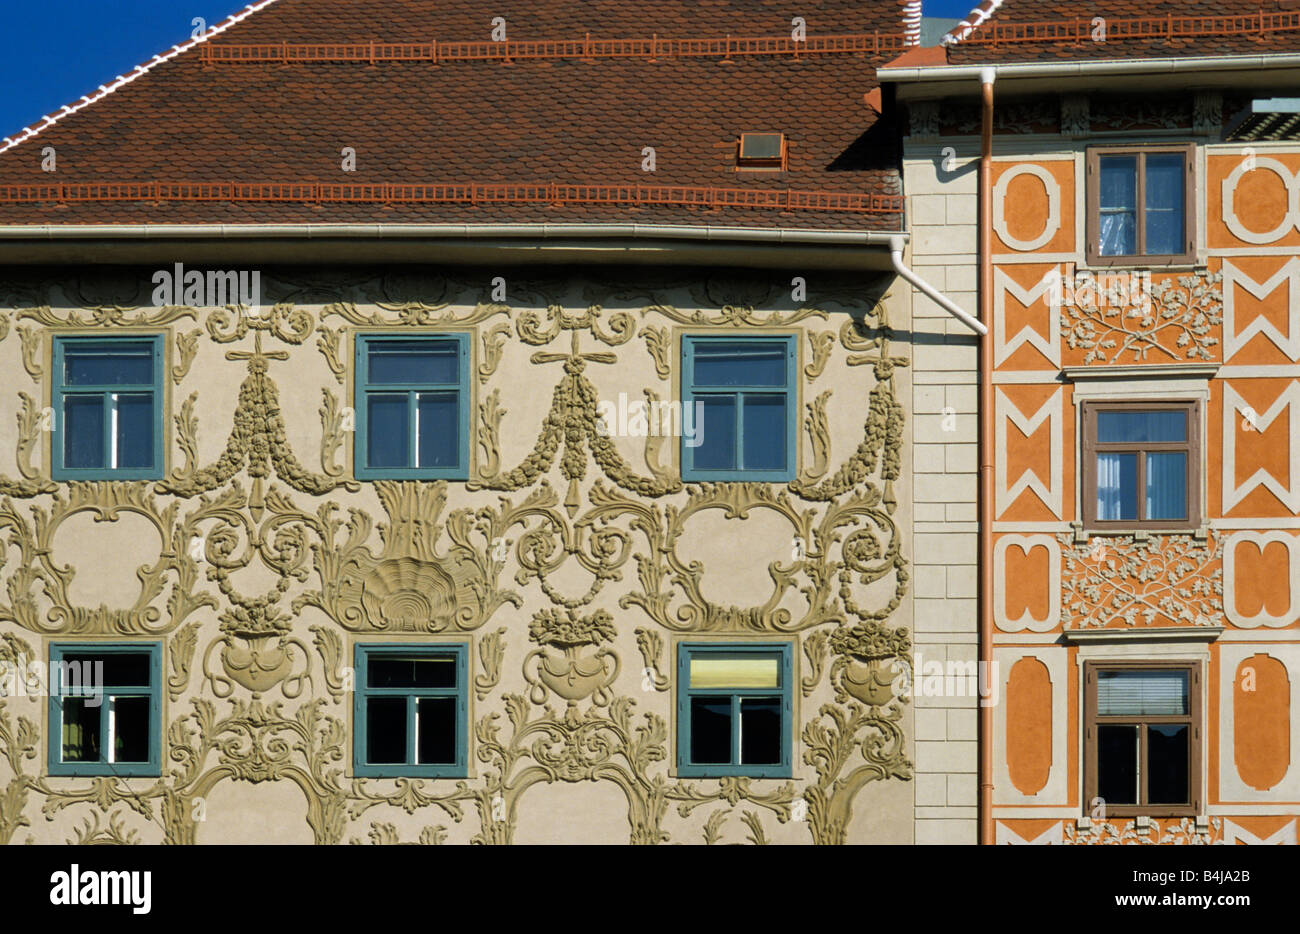 Stucco decorations on Haus am Luegg at Hauptplatz in Graz